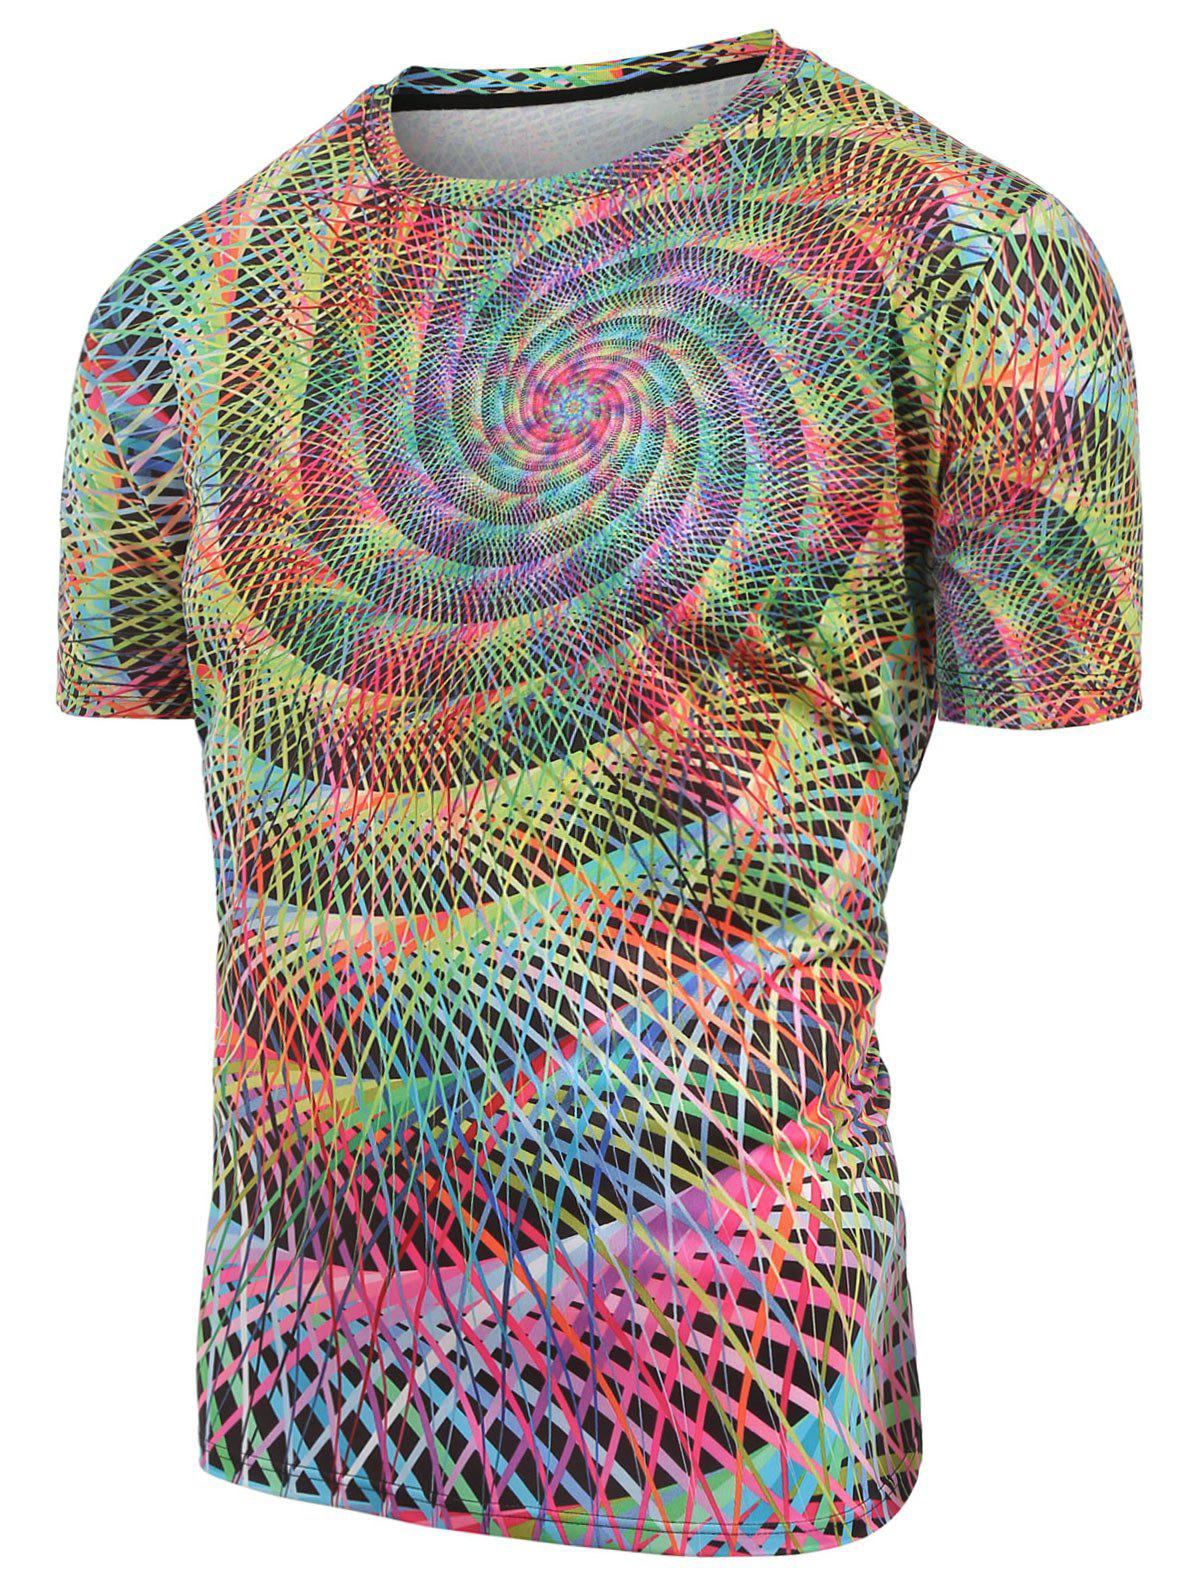 Sale Round Neck Colorful Swirl Print Casual T-shirt